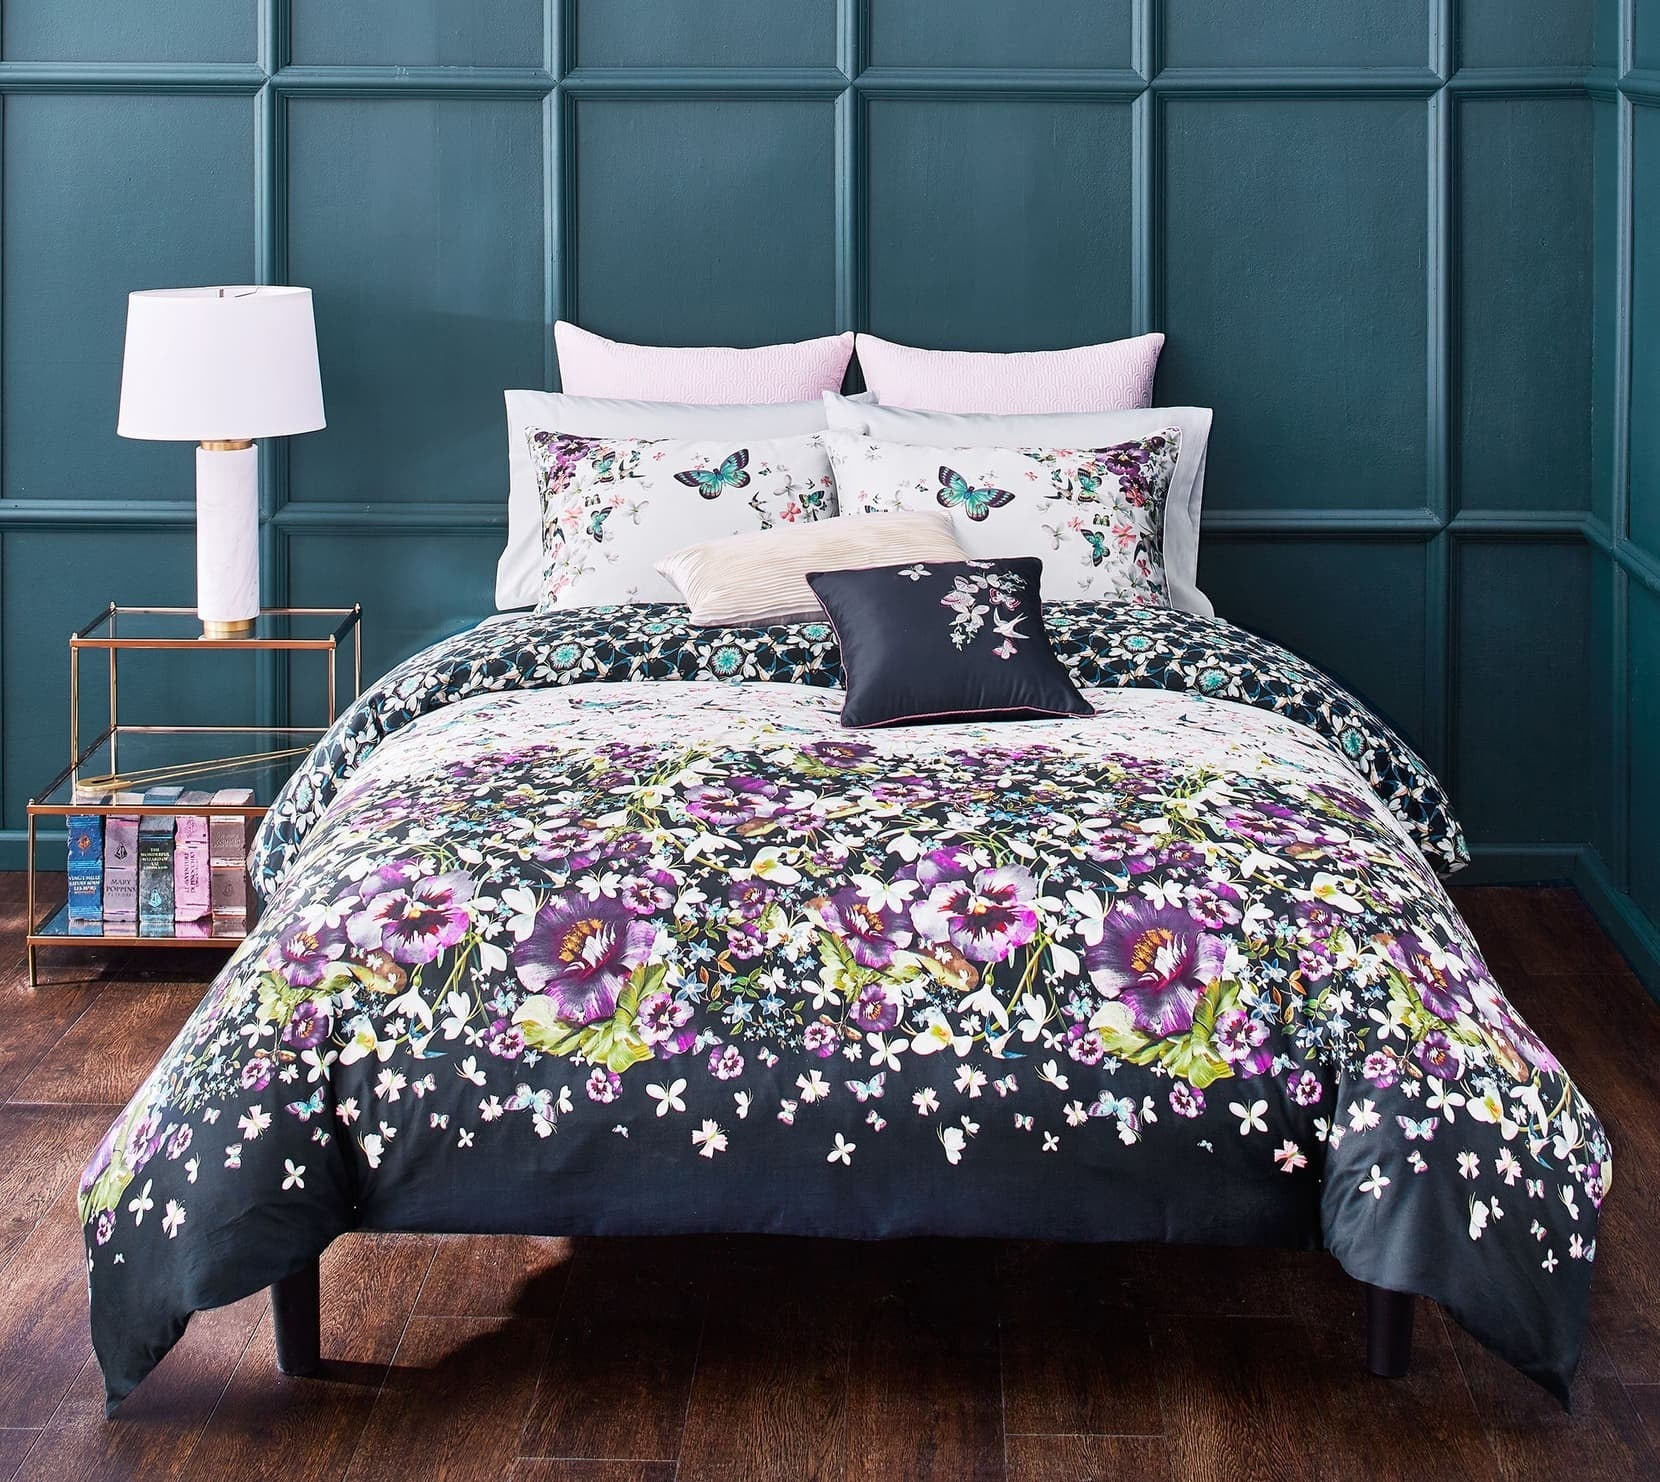 The comforter set in a pansy and butterfly pattern